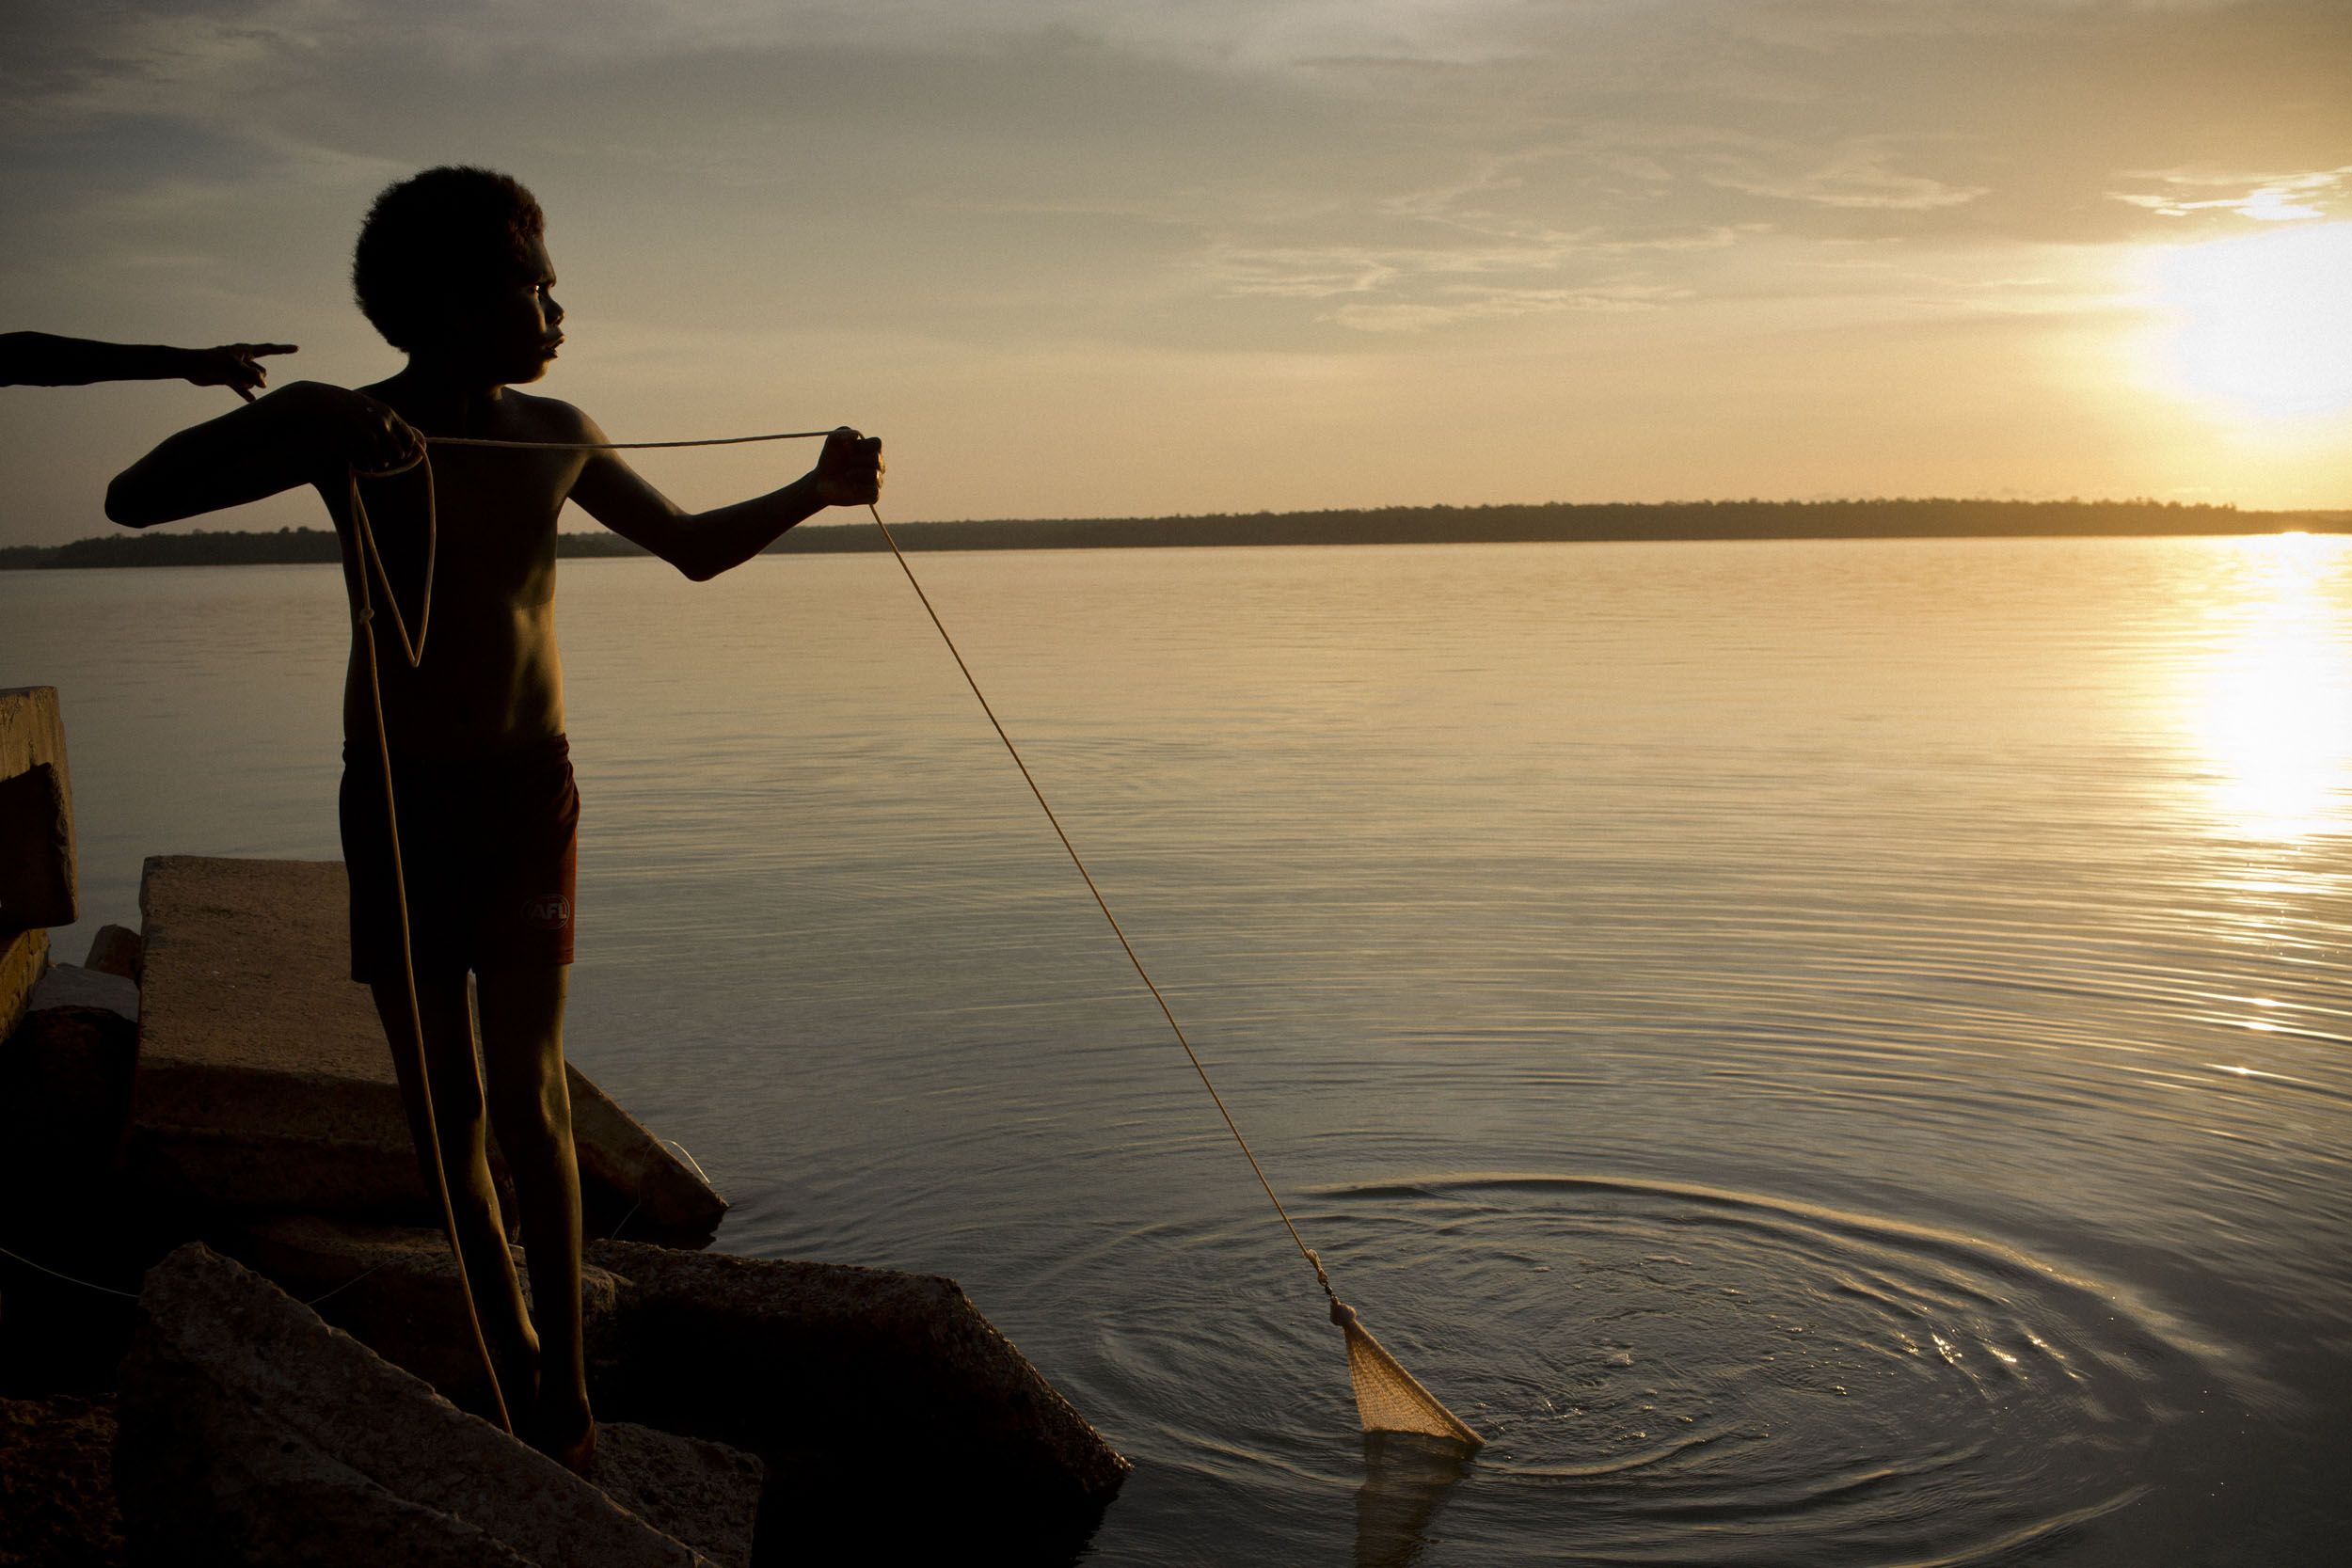 Fishing on the shore of Melville Island, Northern Territory.